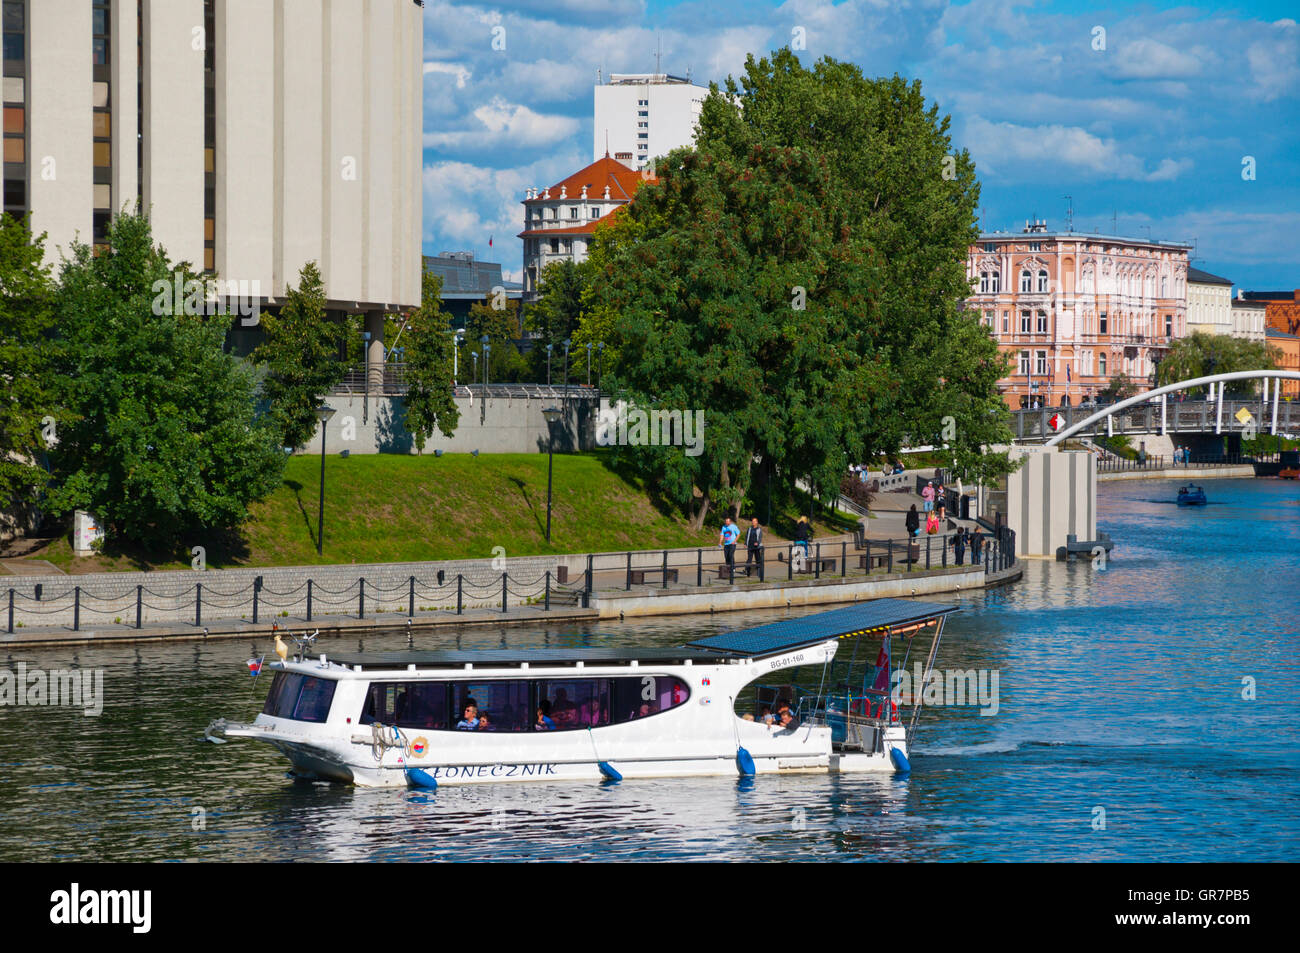 Water taxi, River Brda, Bydgoszcz, Pomerania, Poland Stock Photo